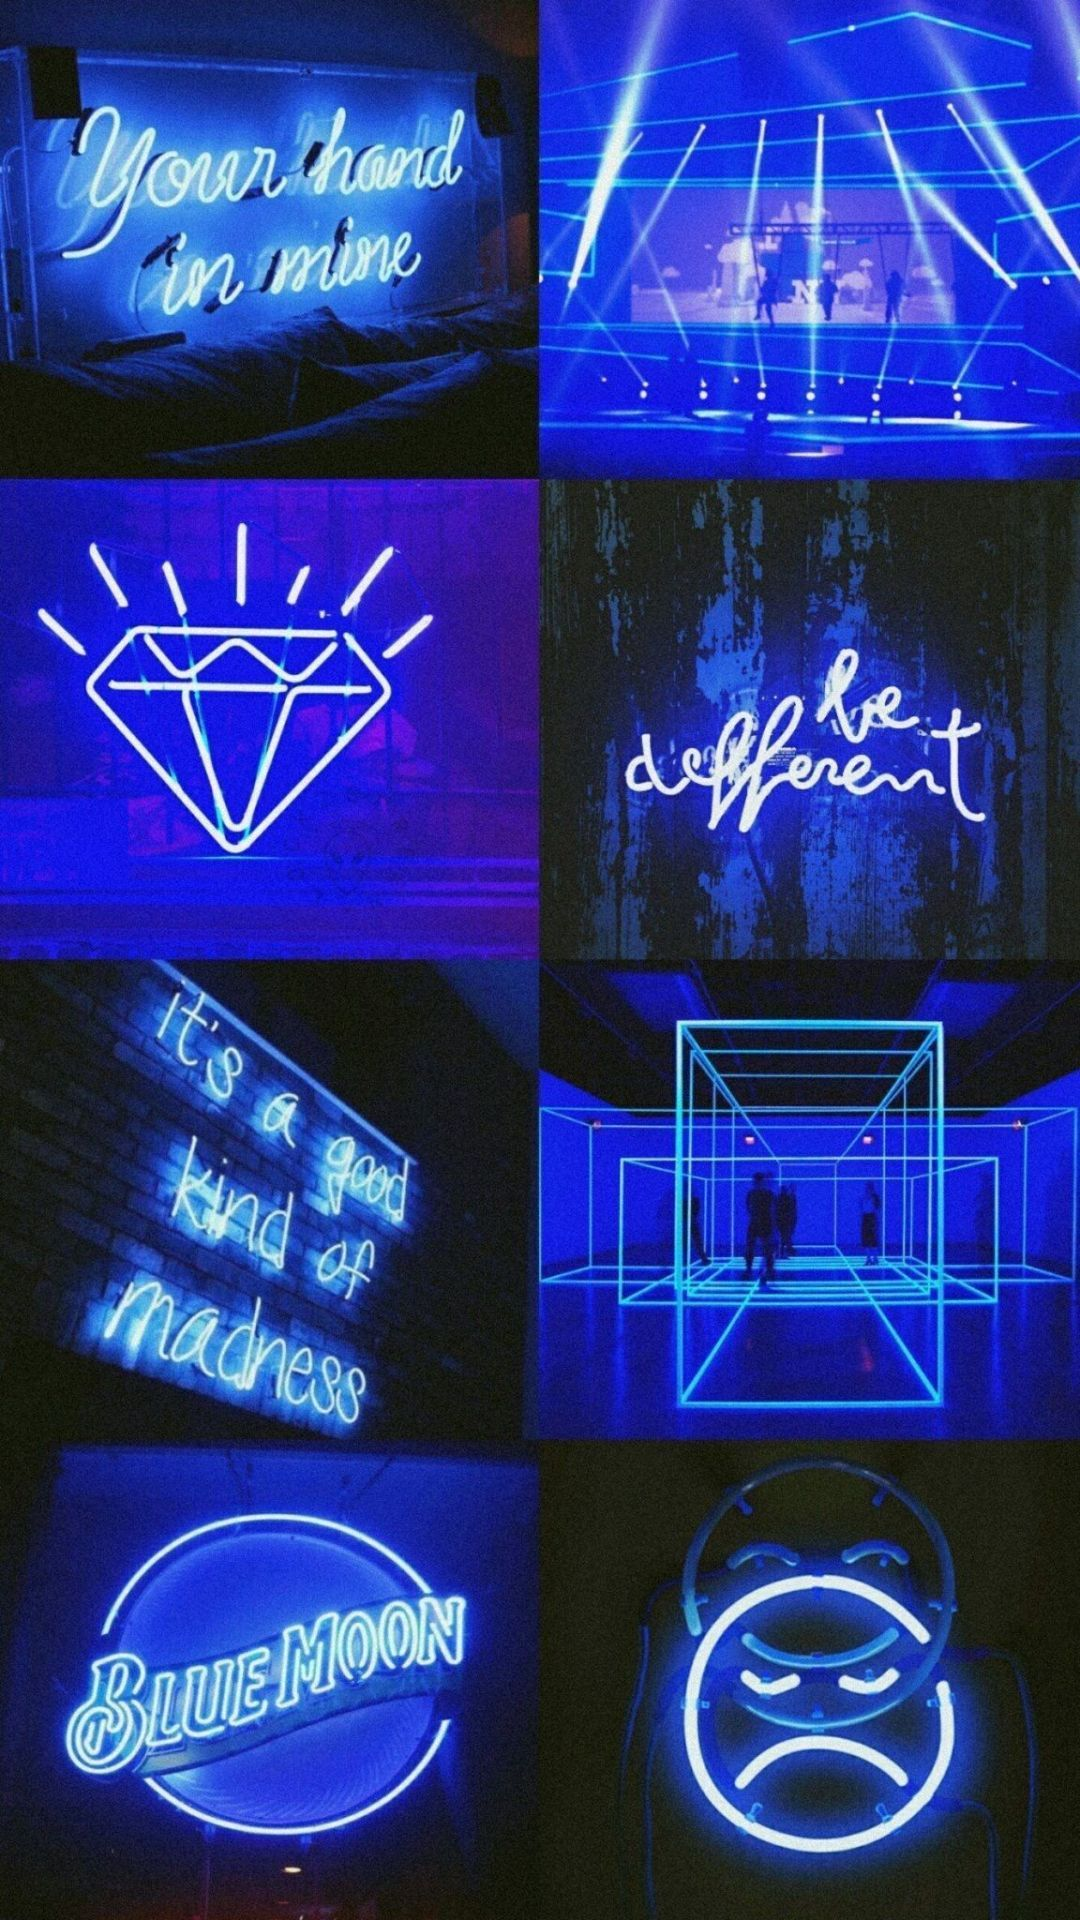 Aesthetic Dark Blue Wallpaper Android In 2020 Dark Blue Wallpaper Neon Wallpaper Blue Wallpaper Iphone